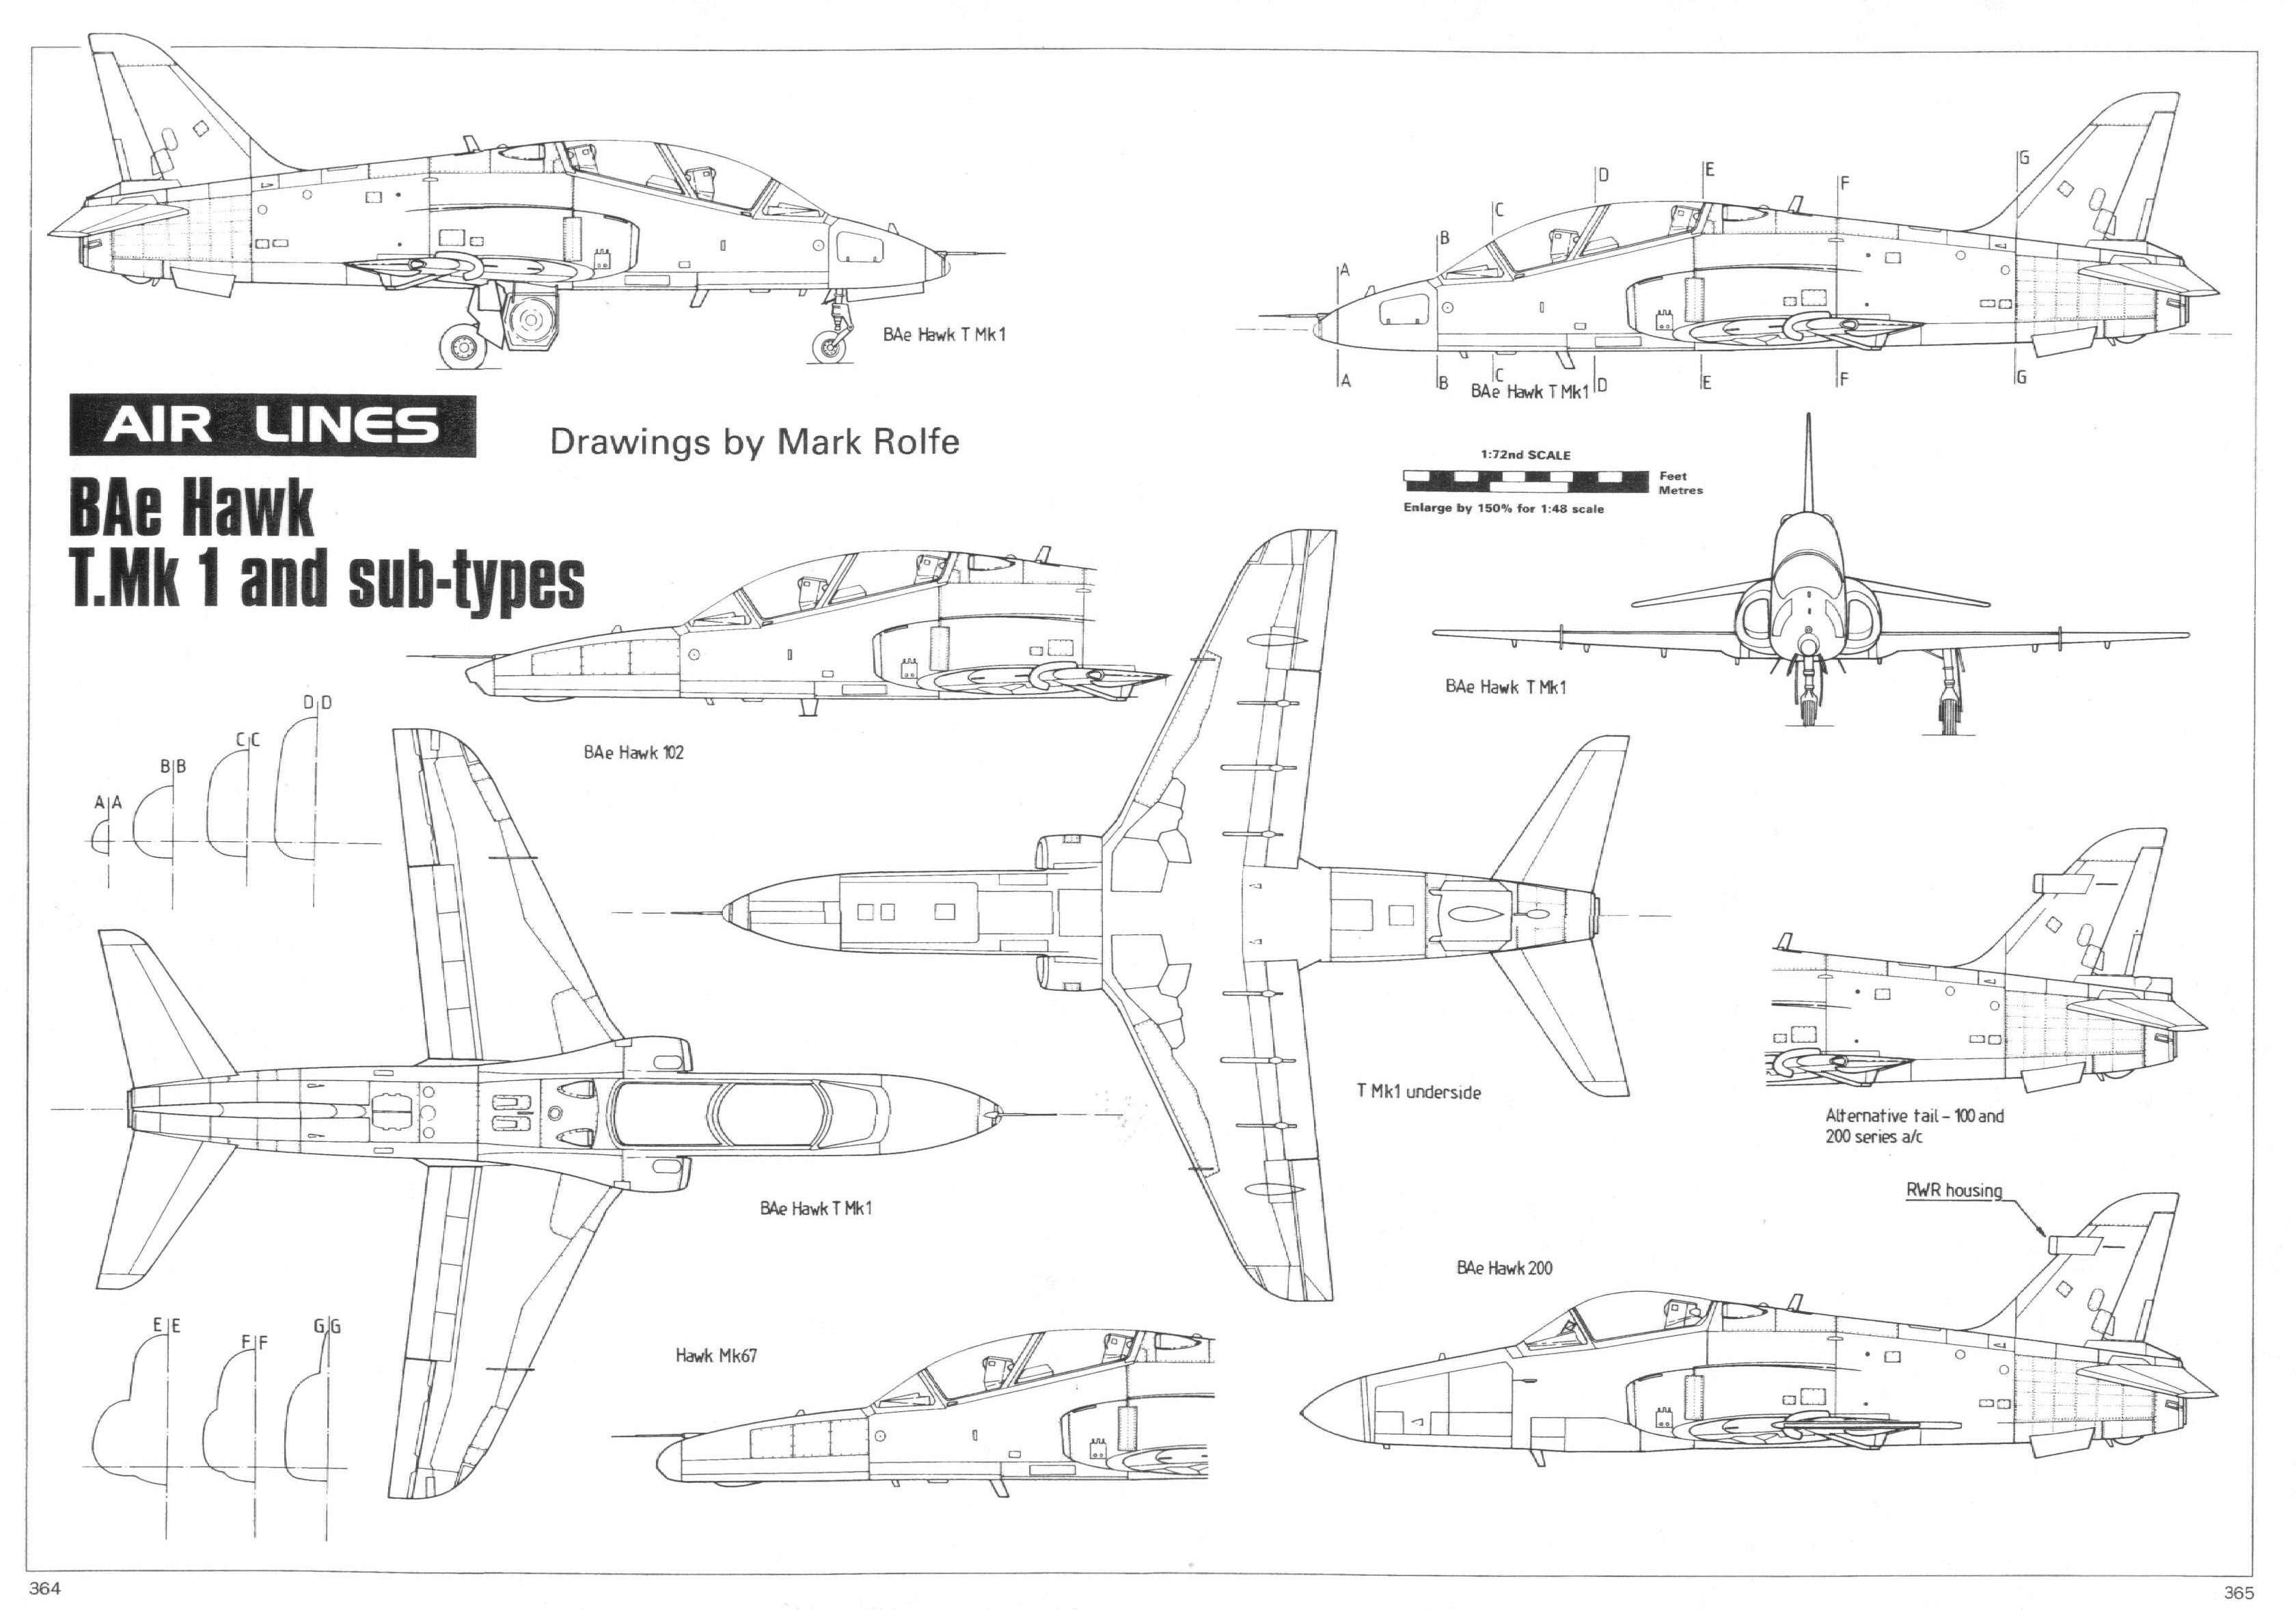 general aviation scale diagram how to create software architecture pin by girish on hawks aircraft art nose military vehicles drawings mk